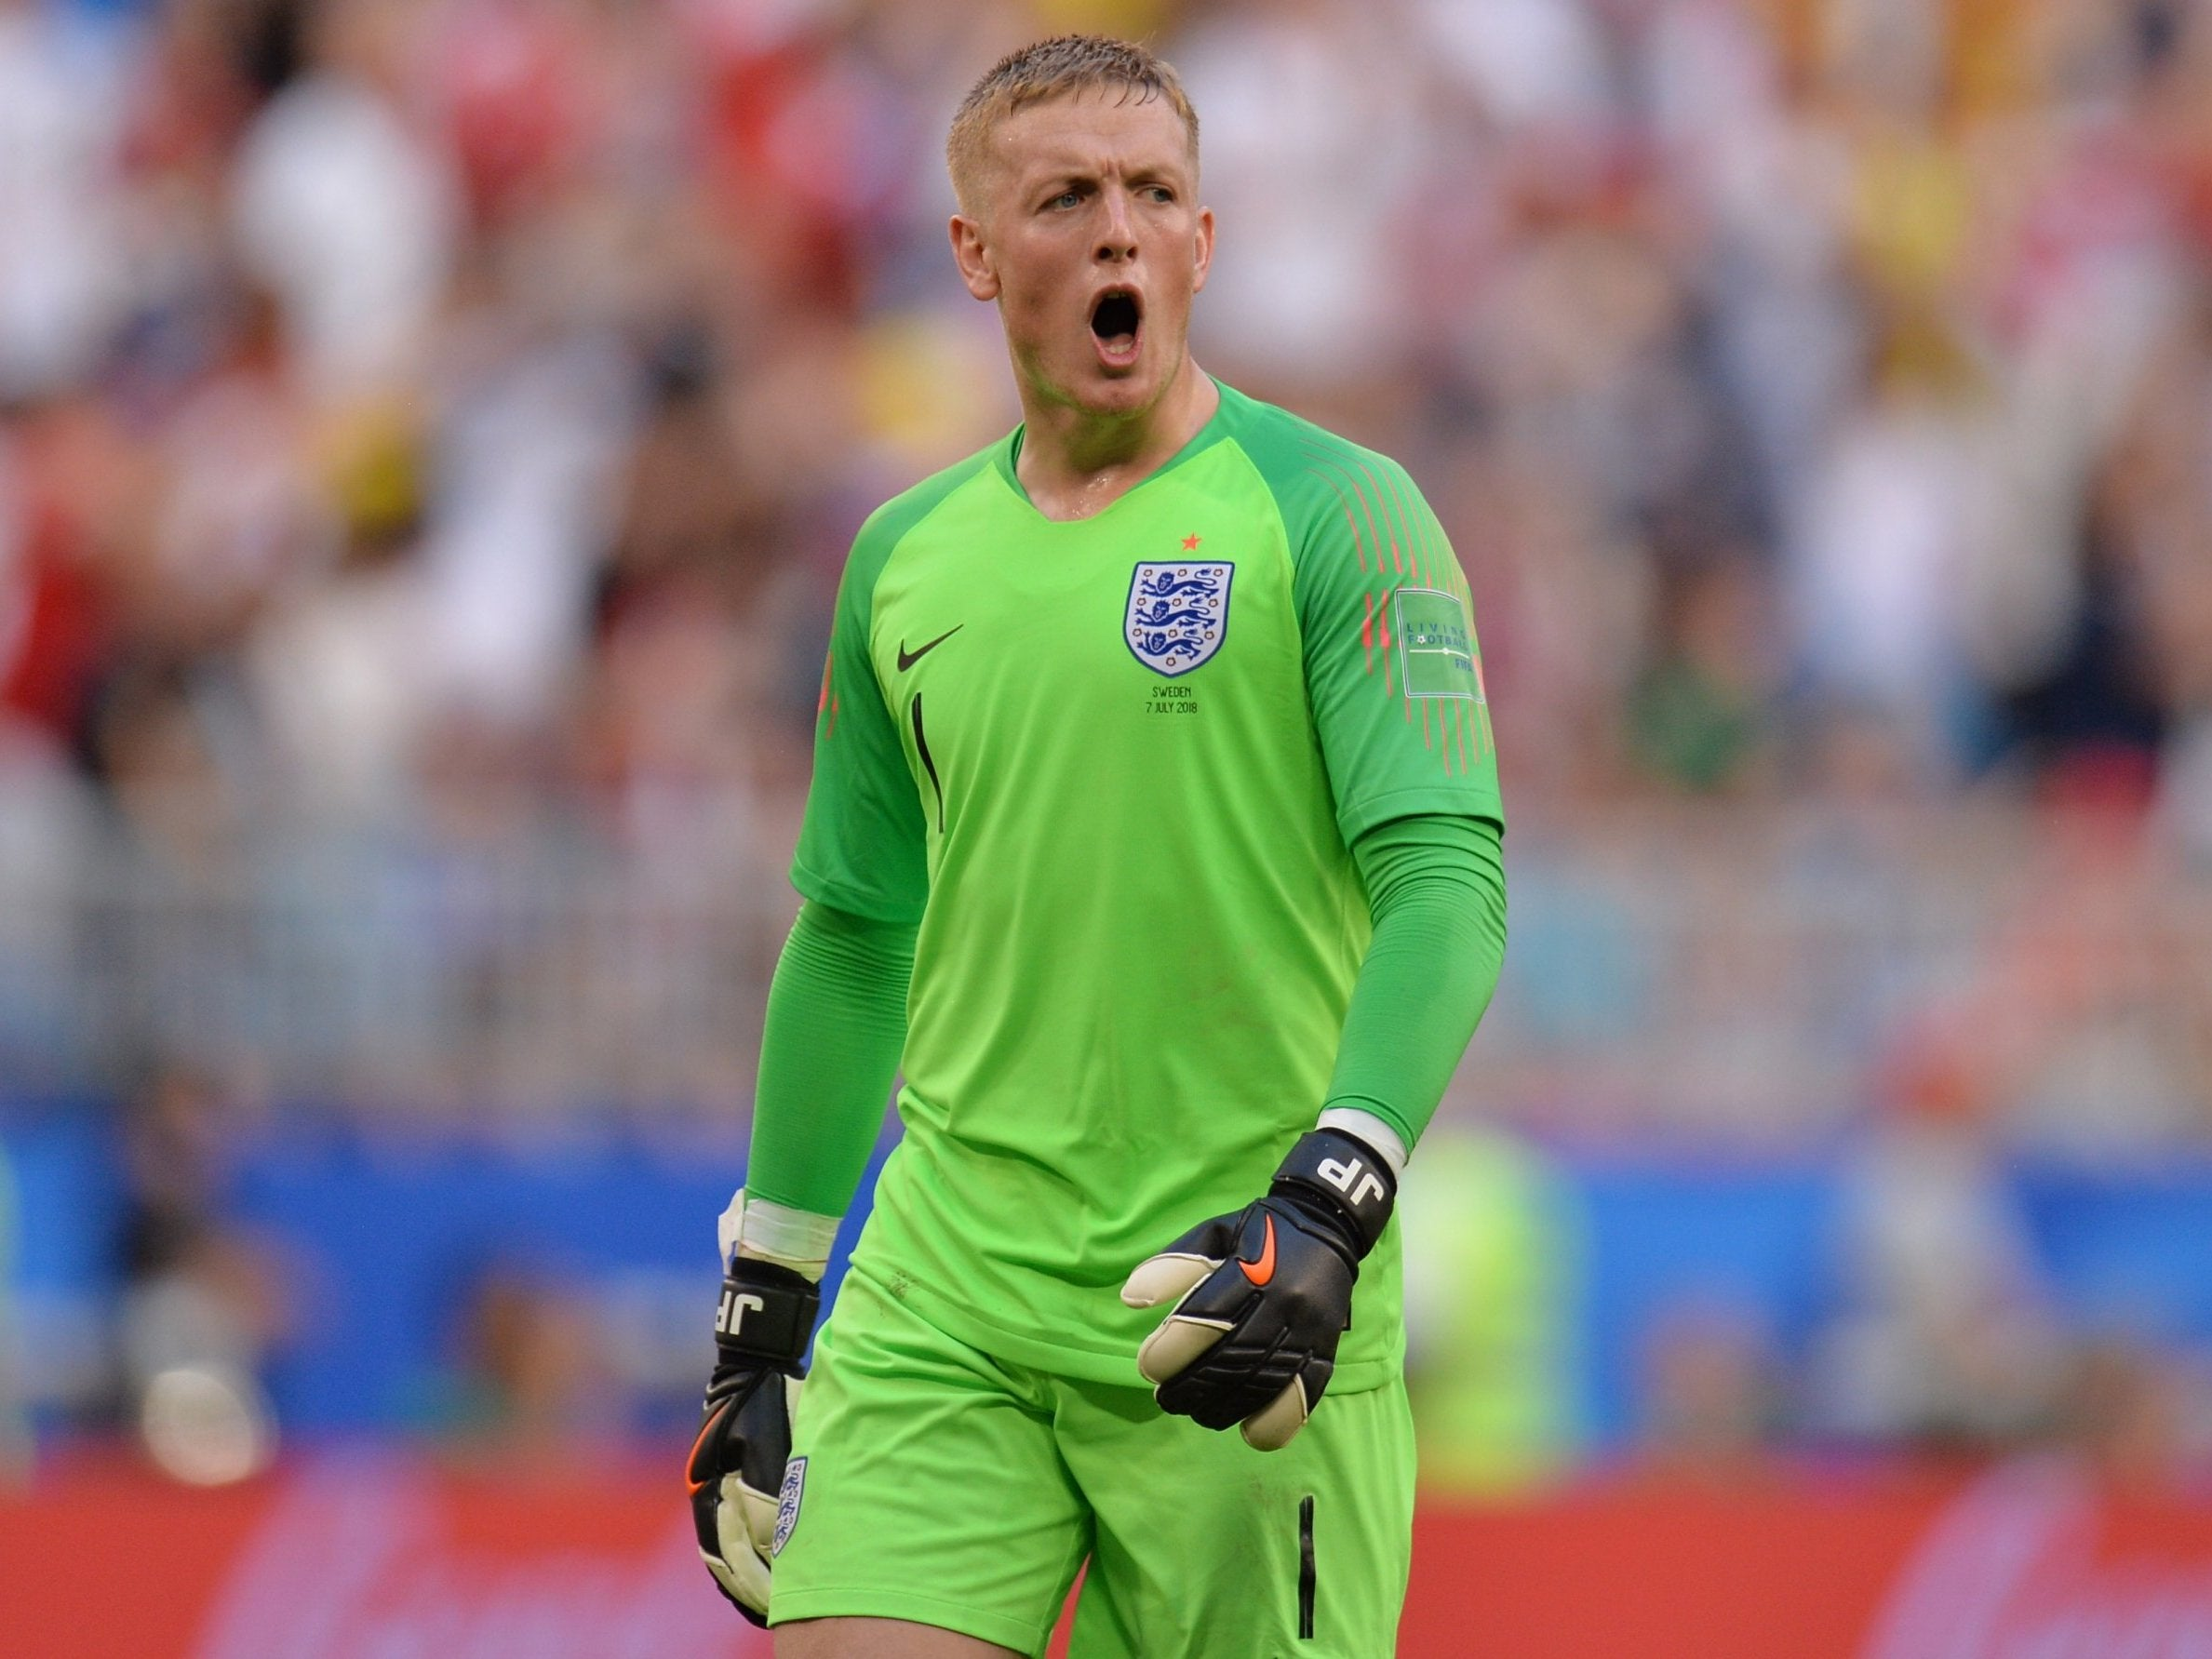 England Vs Sweden: Jordan Pickford On His World Cup